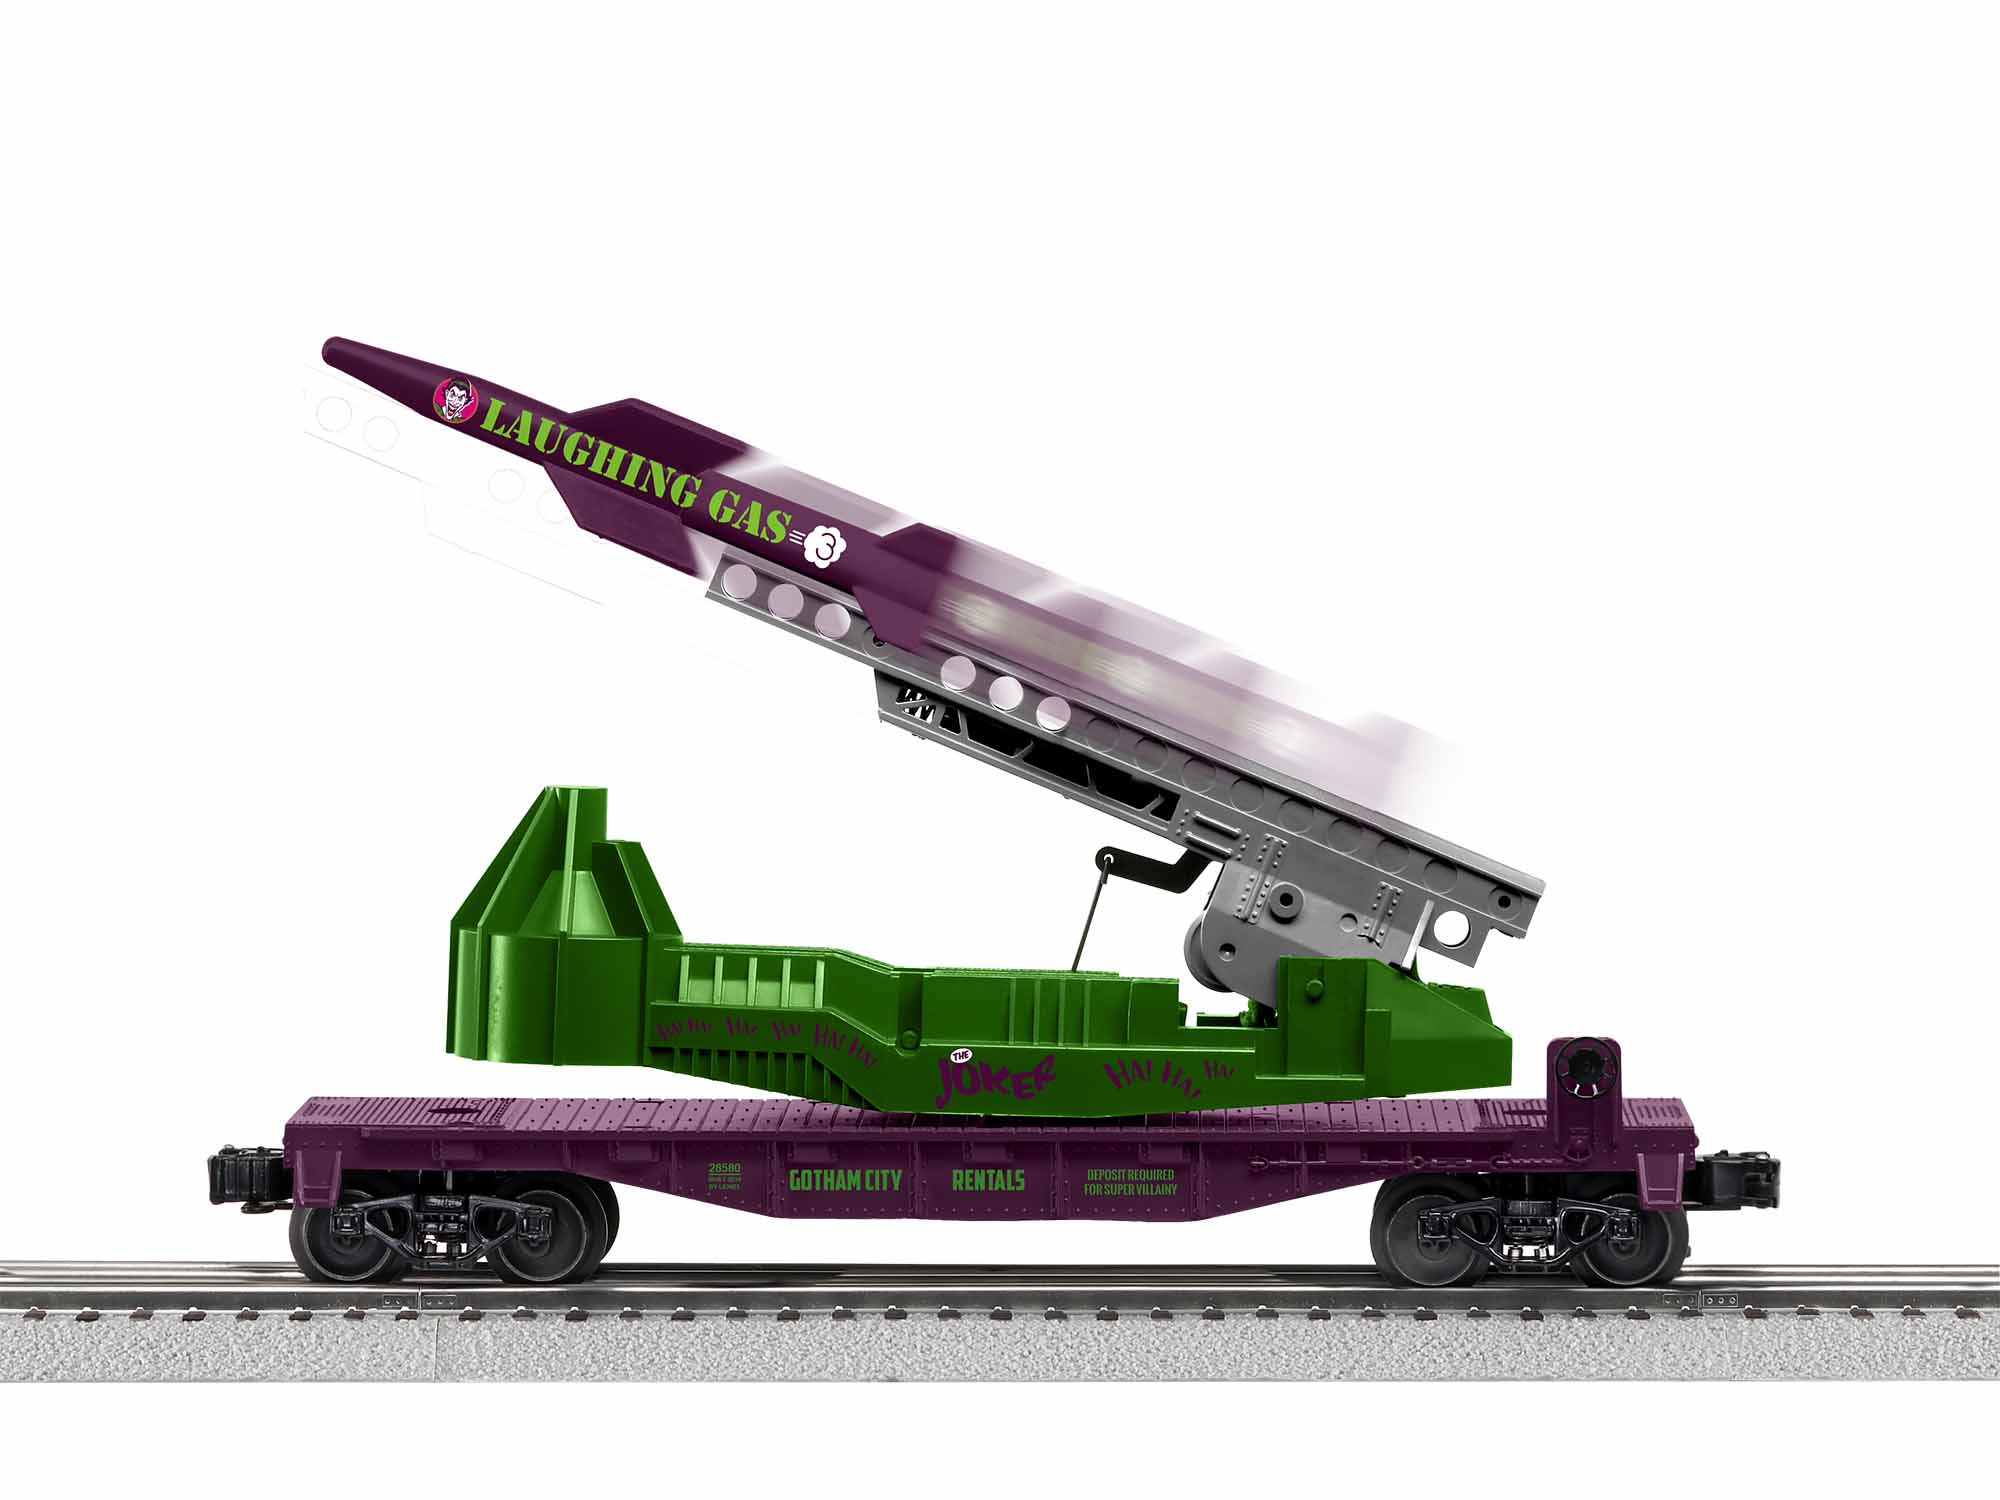 LNL1928580 Lionel O-27 Jokers Laughing Gas Missile Car